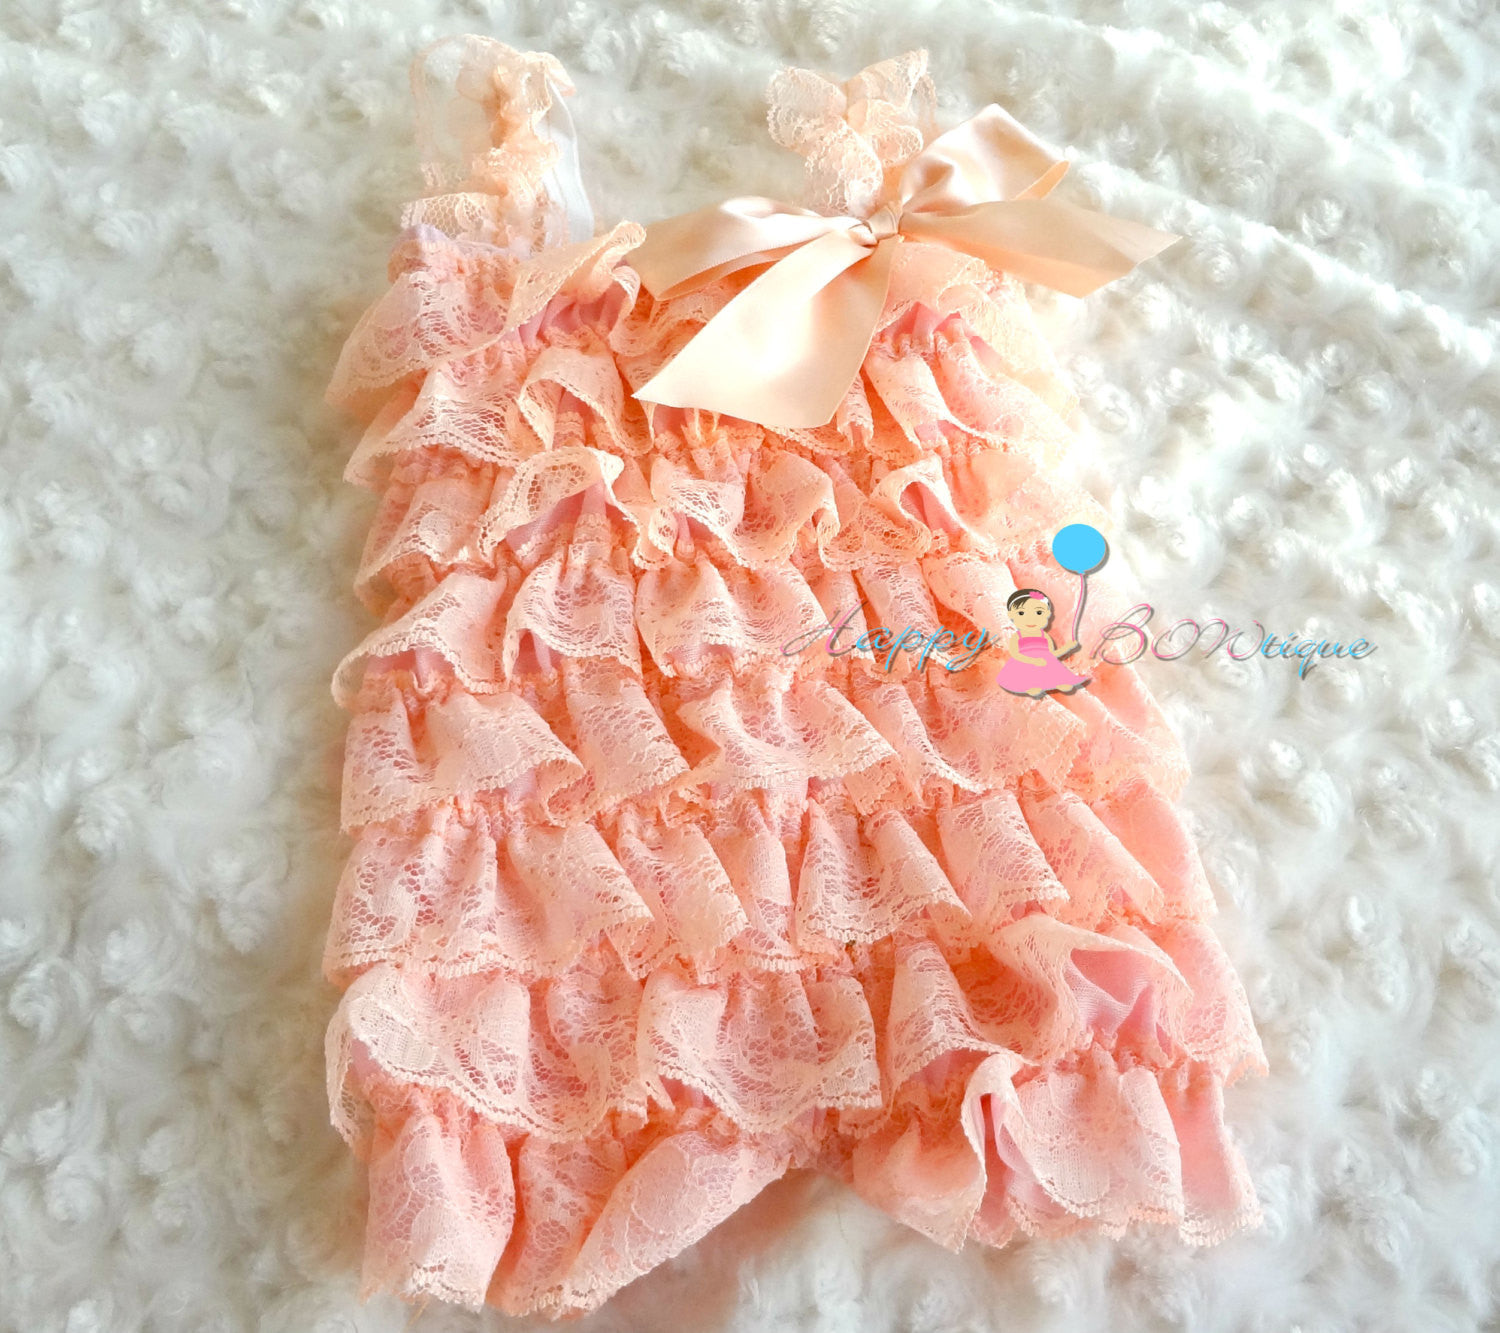 Ivory Mint Blush Peach Lace Petti Romper set - Happy BOWtique - children's clothing, Baby Girl clothing